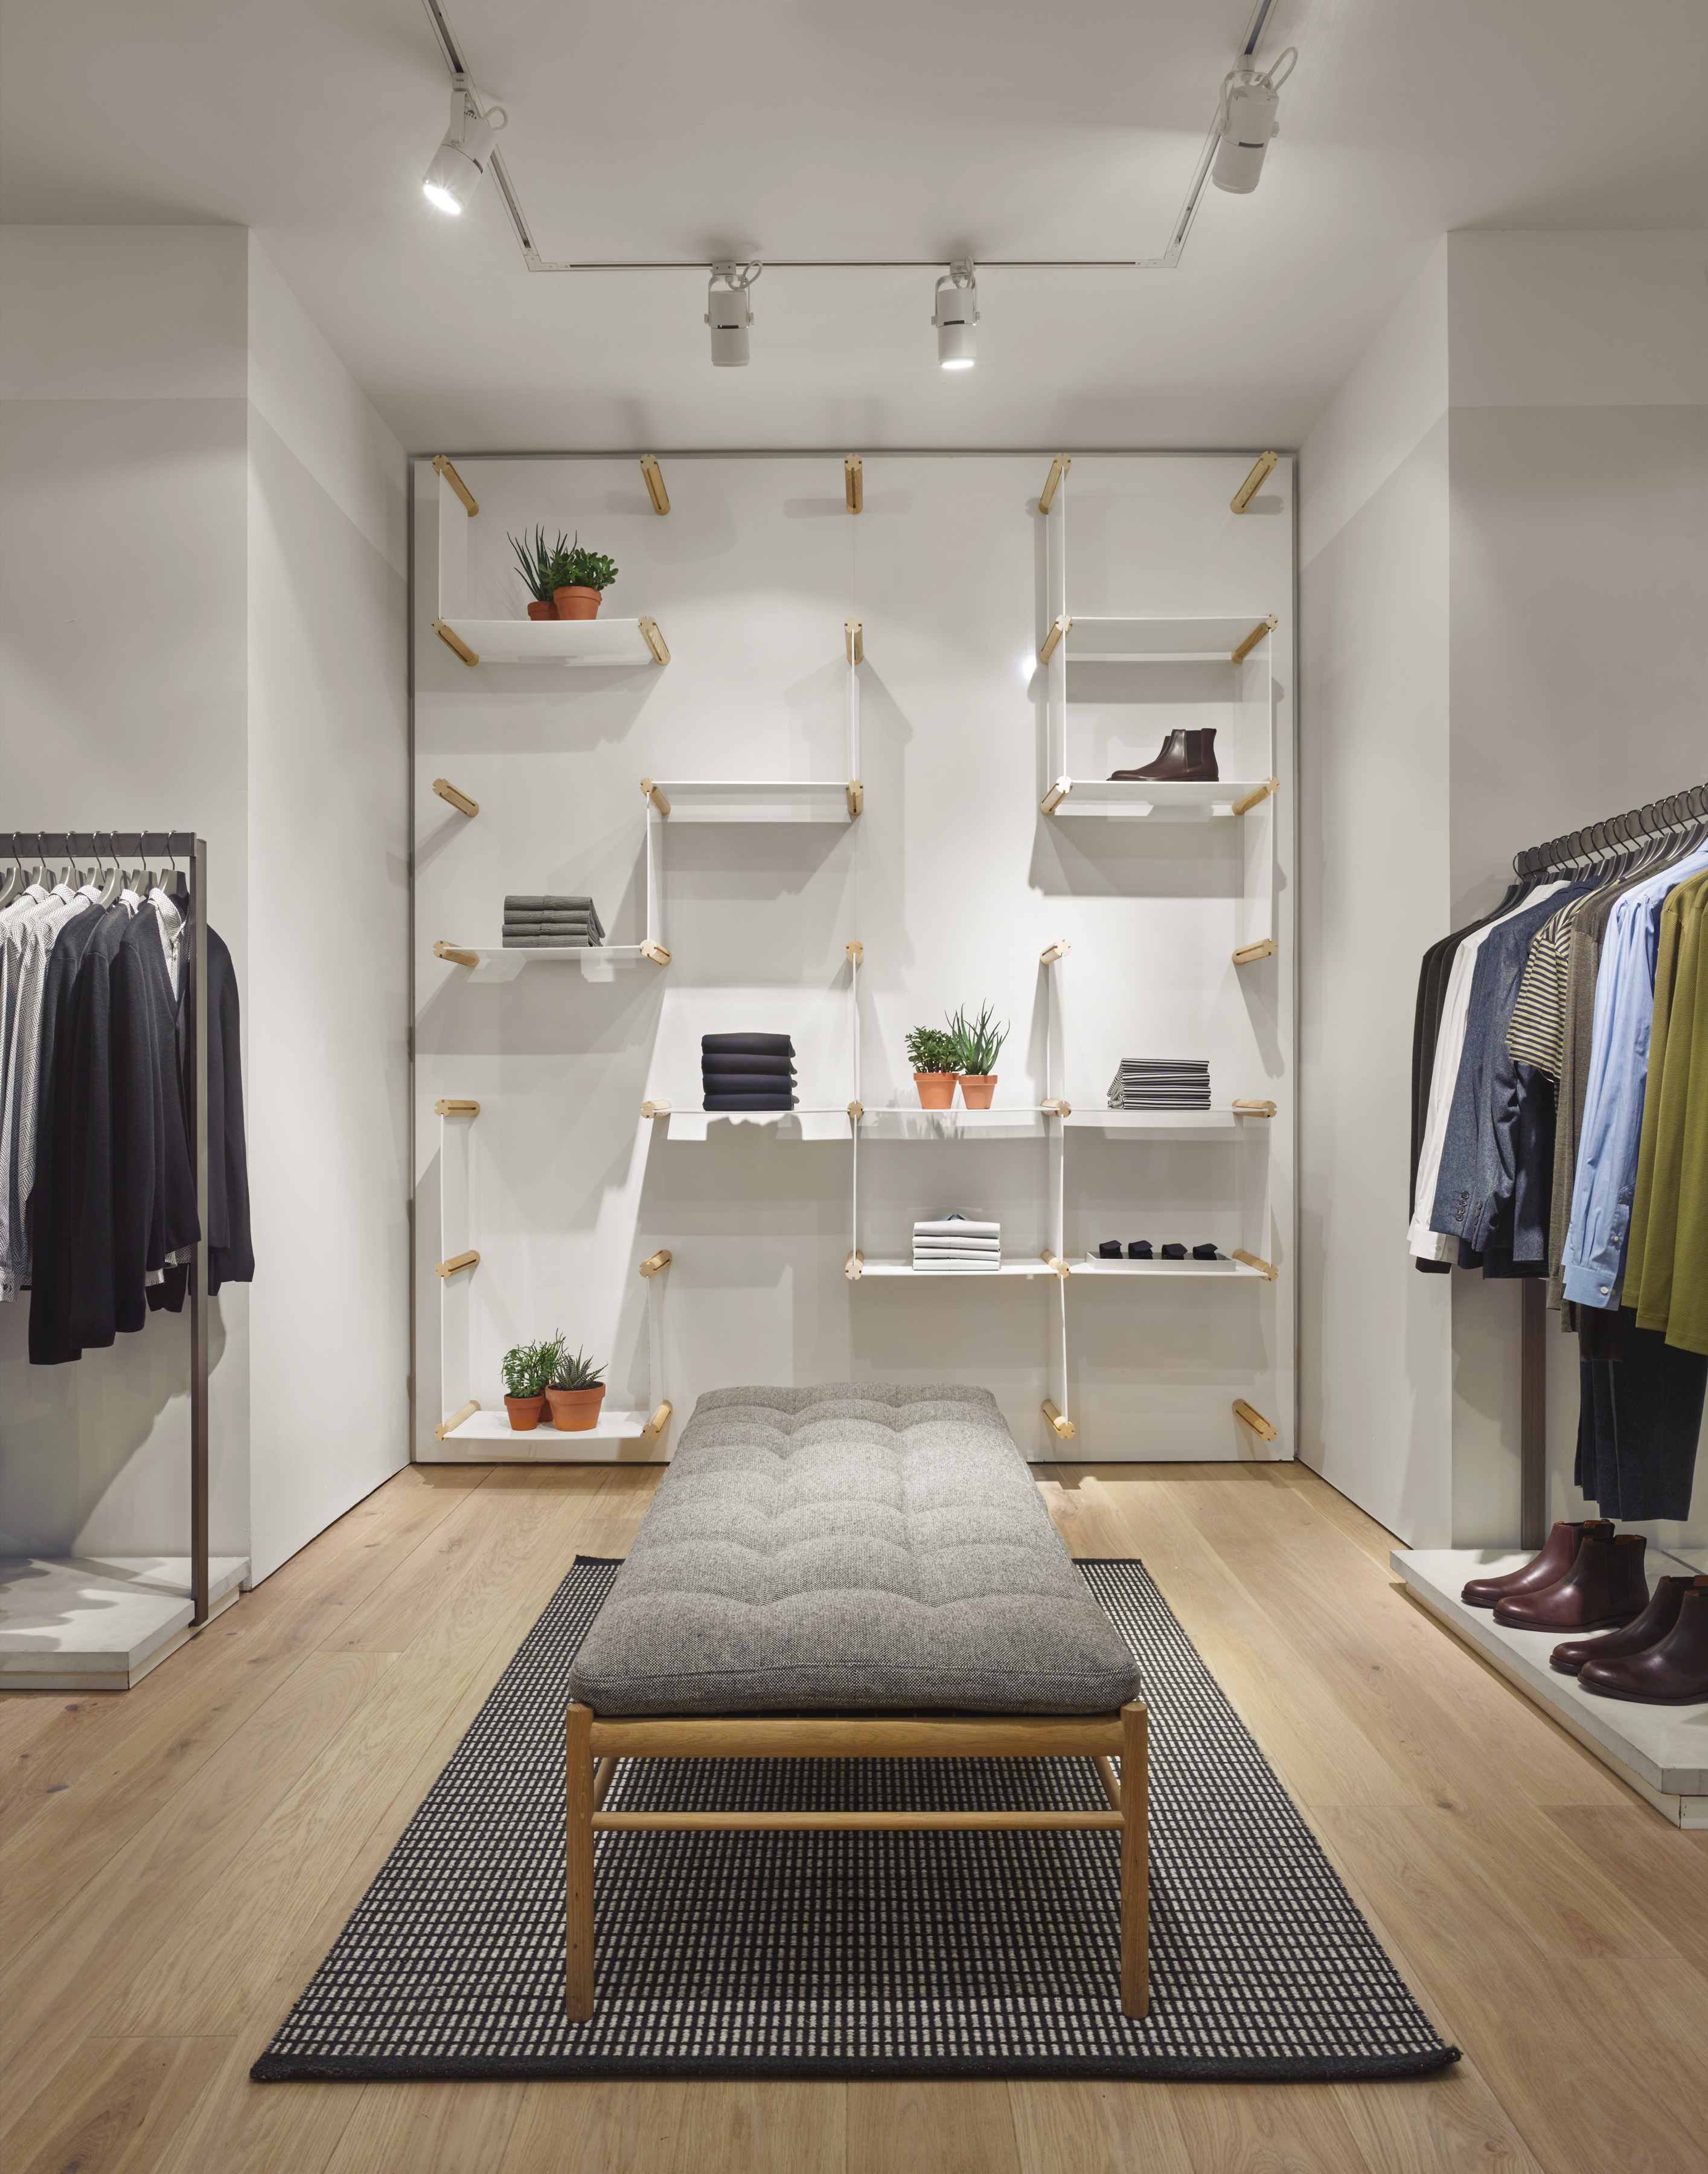 COS on Fifth Avenue Opens Today and the Financial District Is